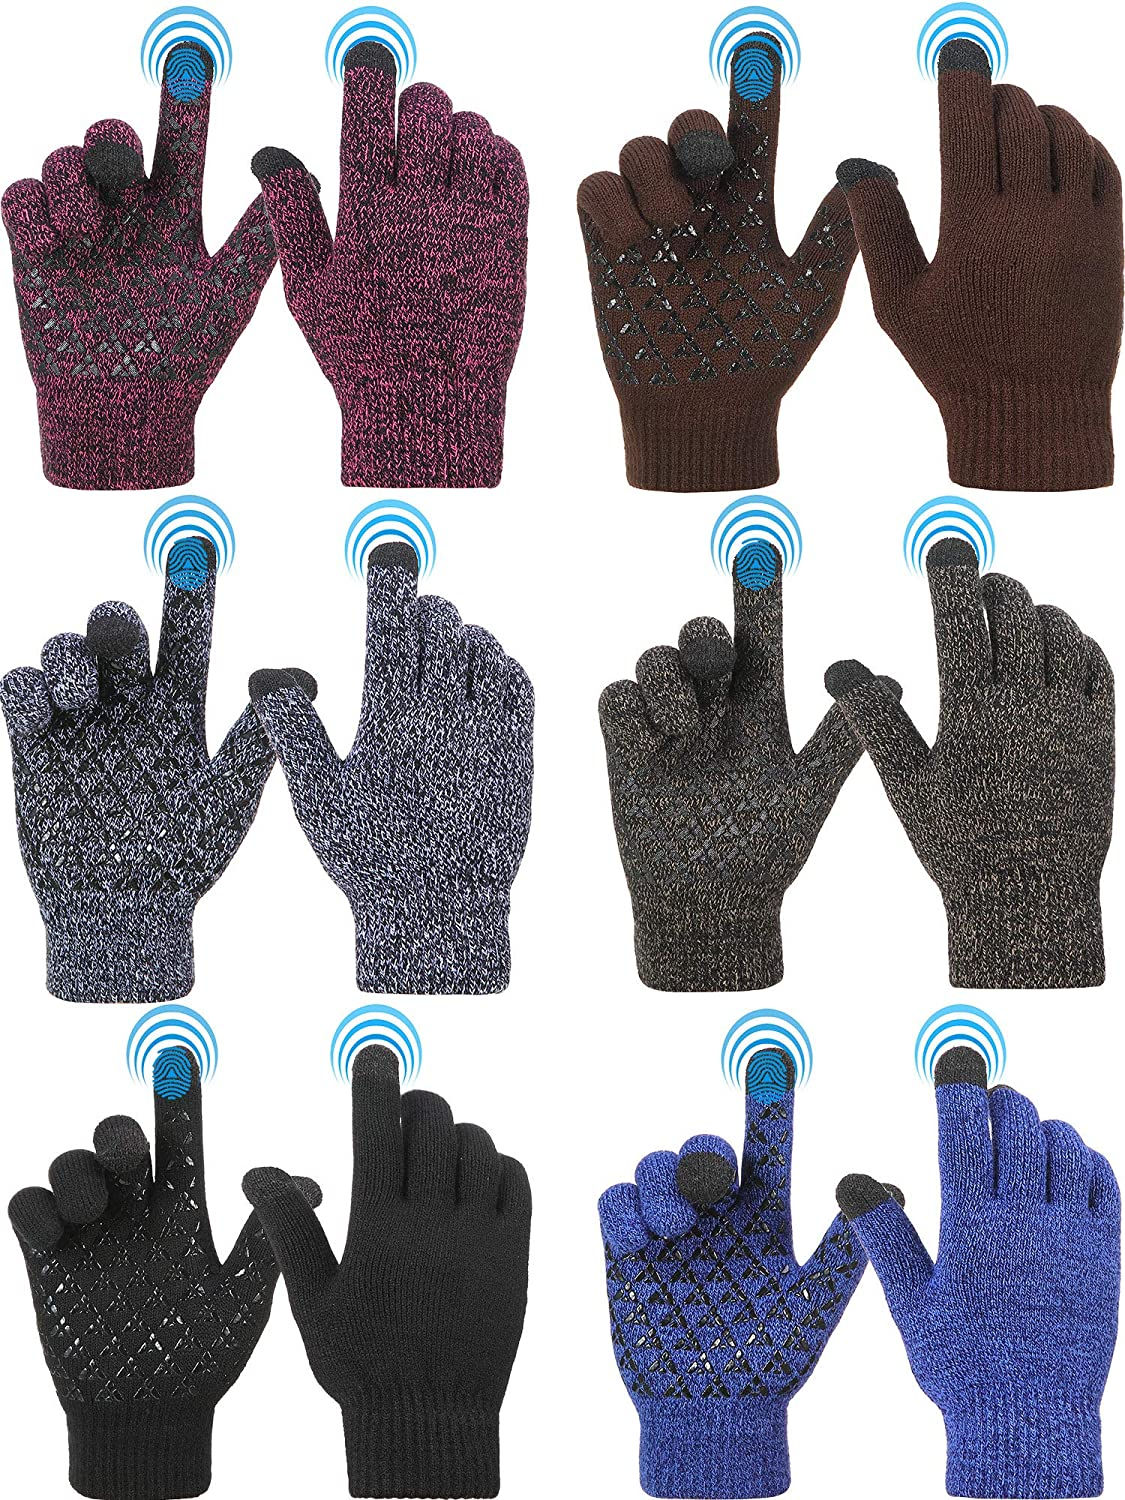 6 Pairs Touch Screen Gloves Winter Knit Touch Screen Mittens Warm Texting Gloves for Men and Women